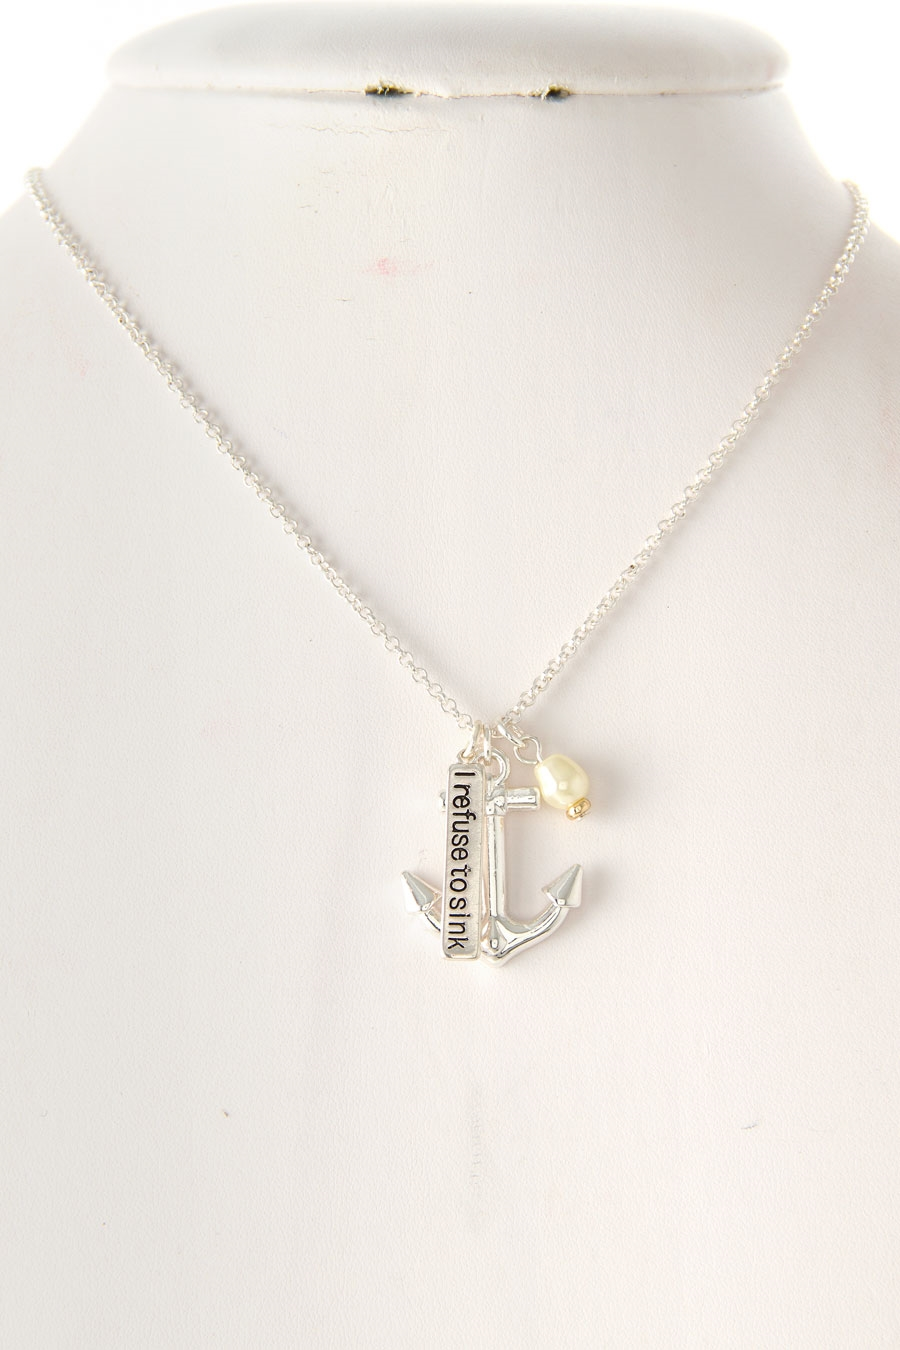 ANCHOR  PEARL CHARM NECKLACE - orangeshine.com